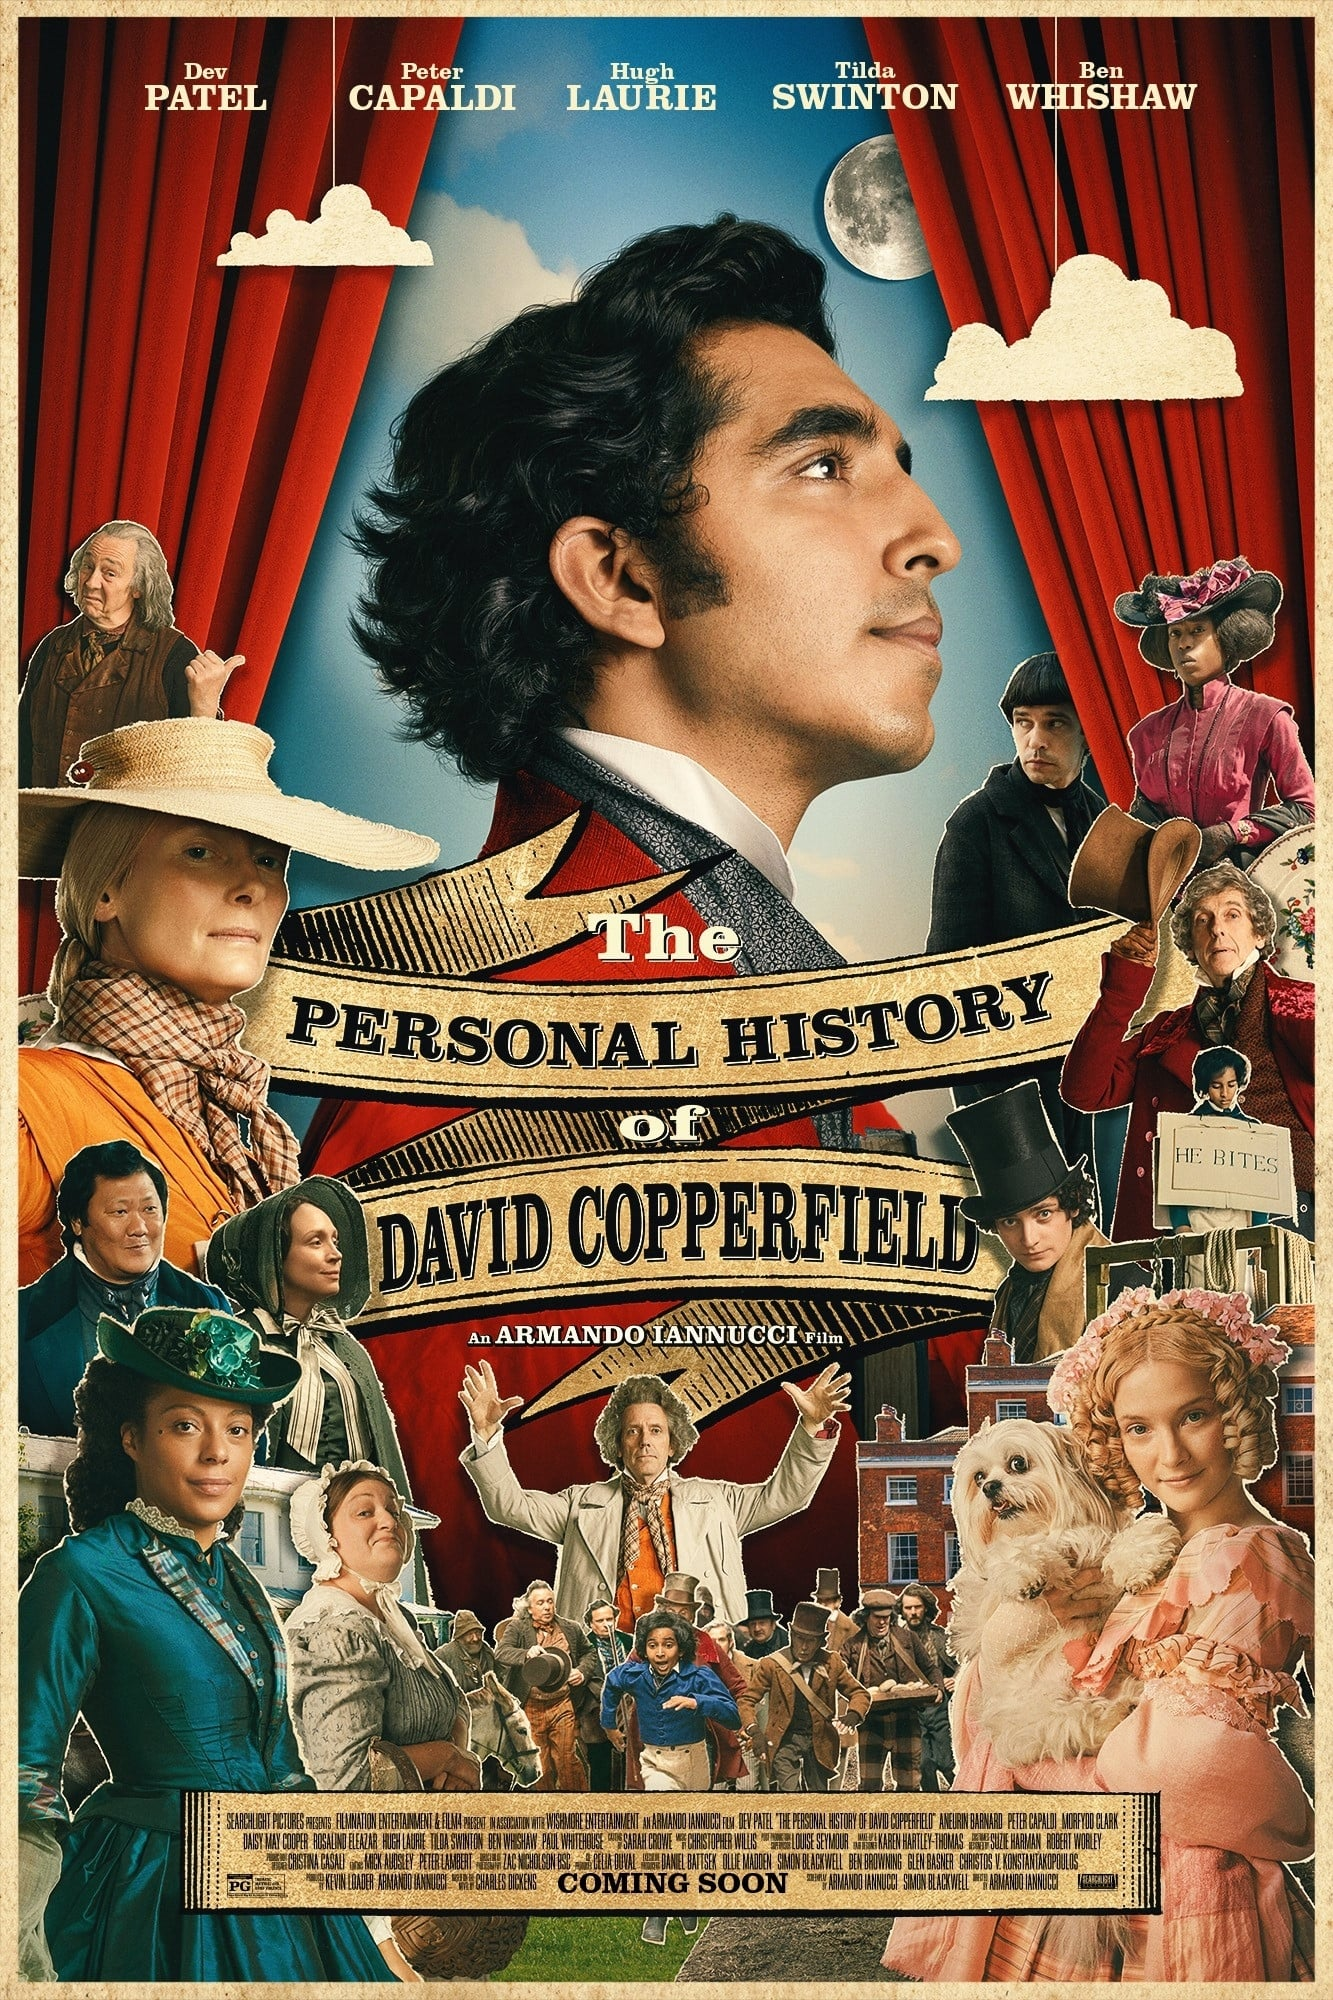 assistir filme a vida extraordinária de david copperfield